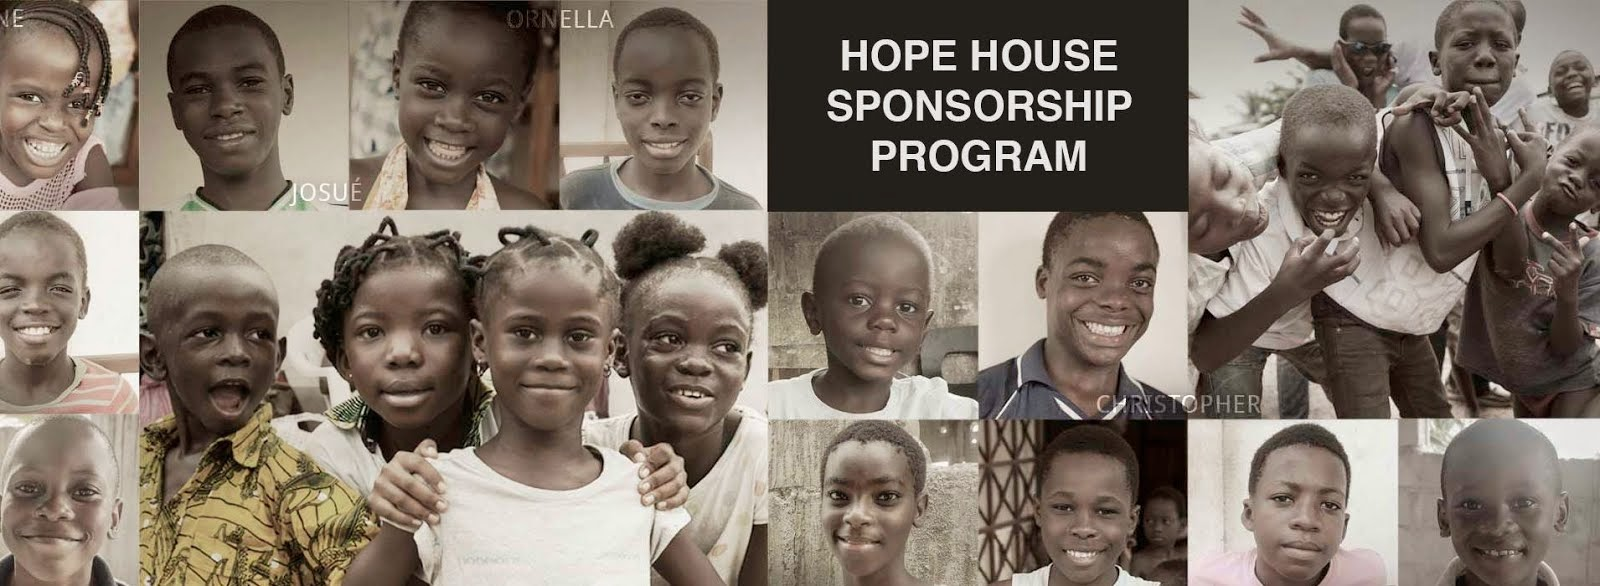 Sponsor Hope House for Abandoned & Orphaned Children today